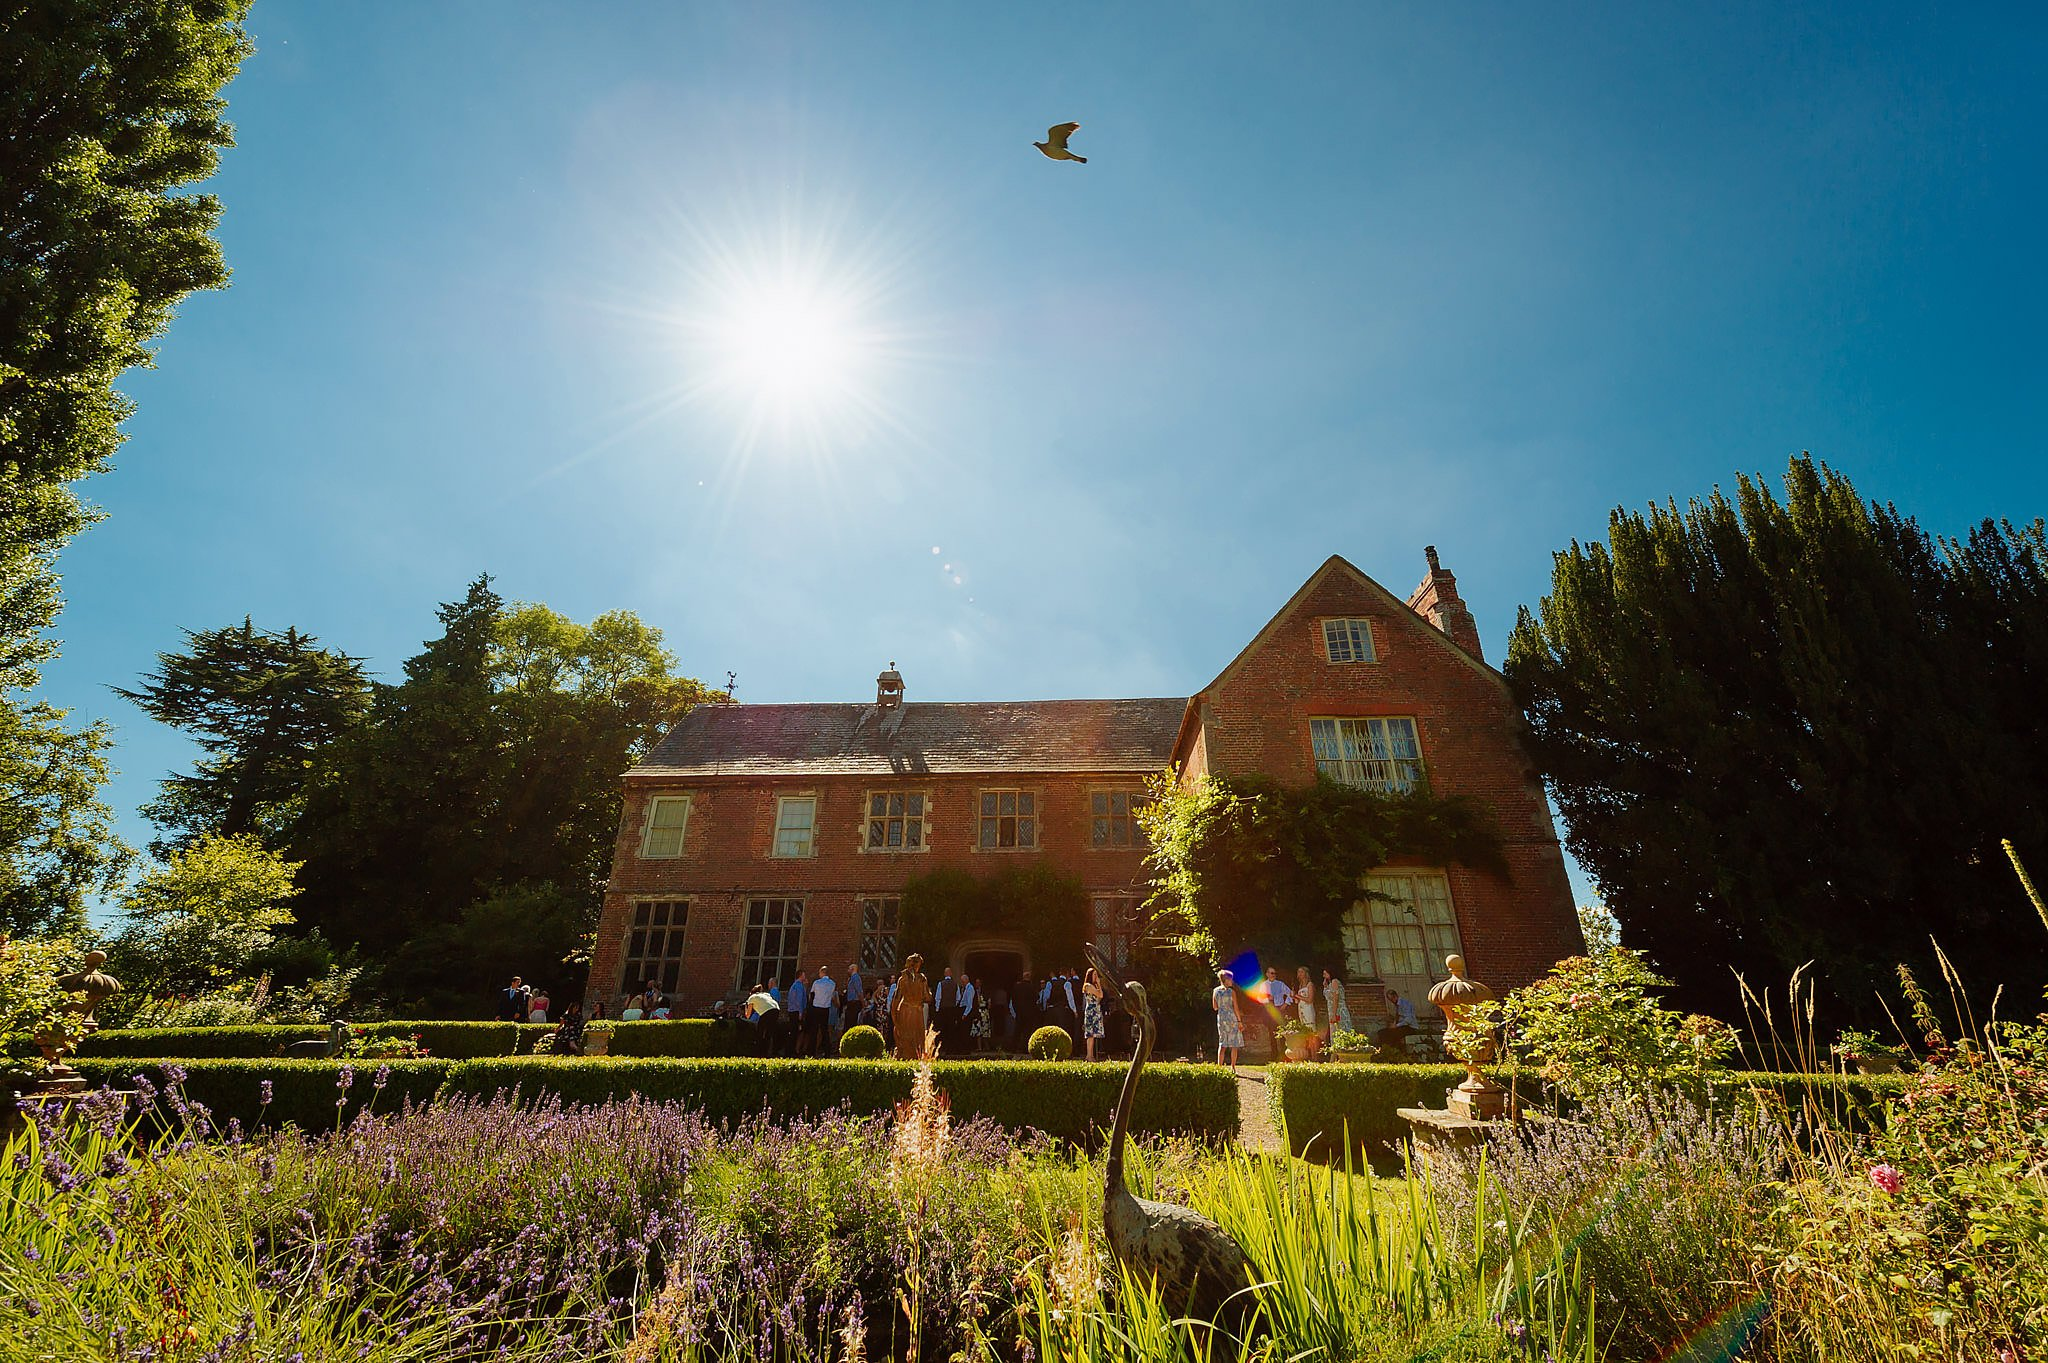 hellens manor wedding 72 - Wedding photography at Hellens Manor in Herefordshire, West Midlands | Shelley + Ian